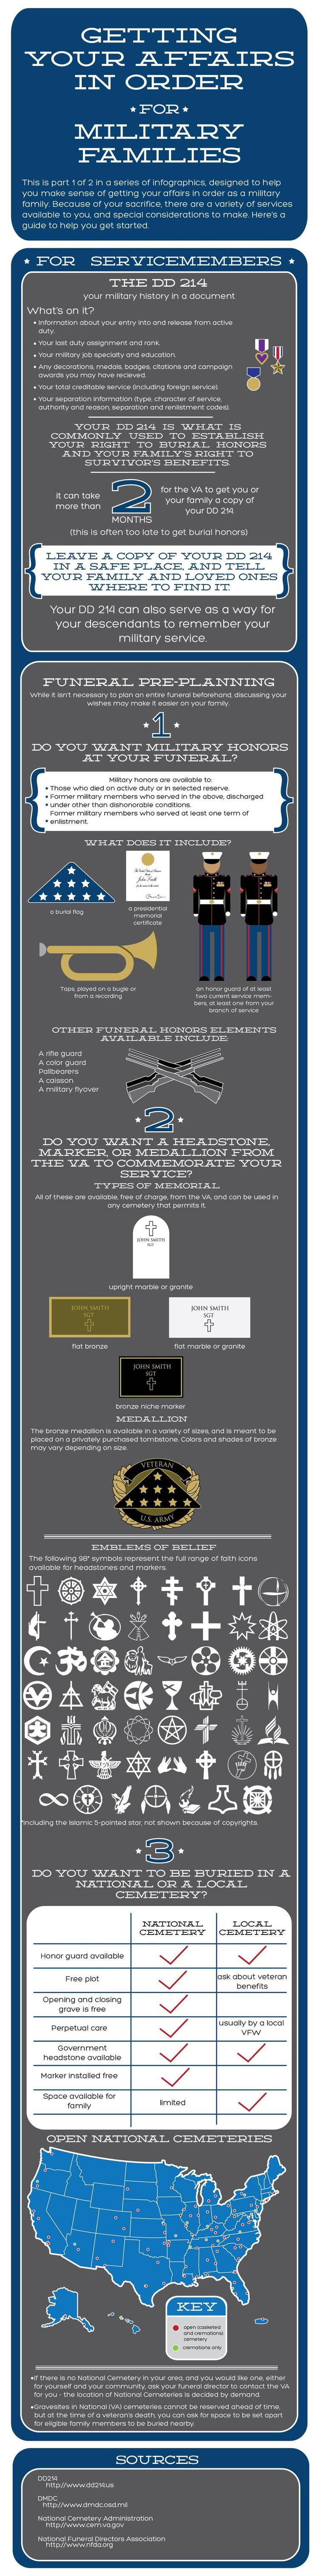 Military Funeral Infographic, FYI for family members, unit needs and reference.